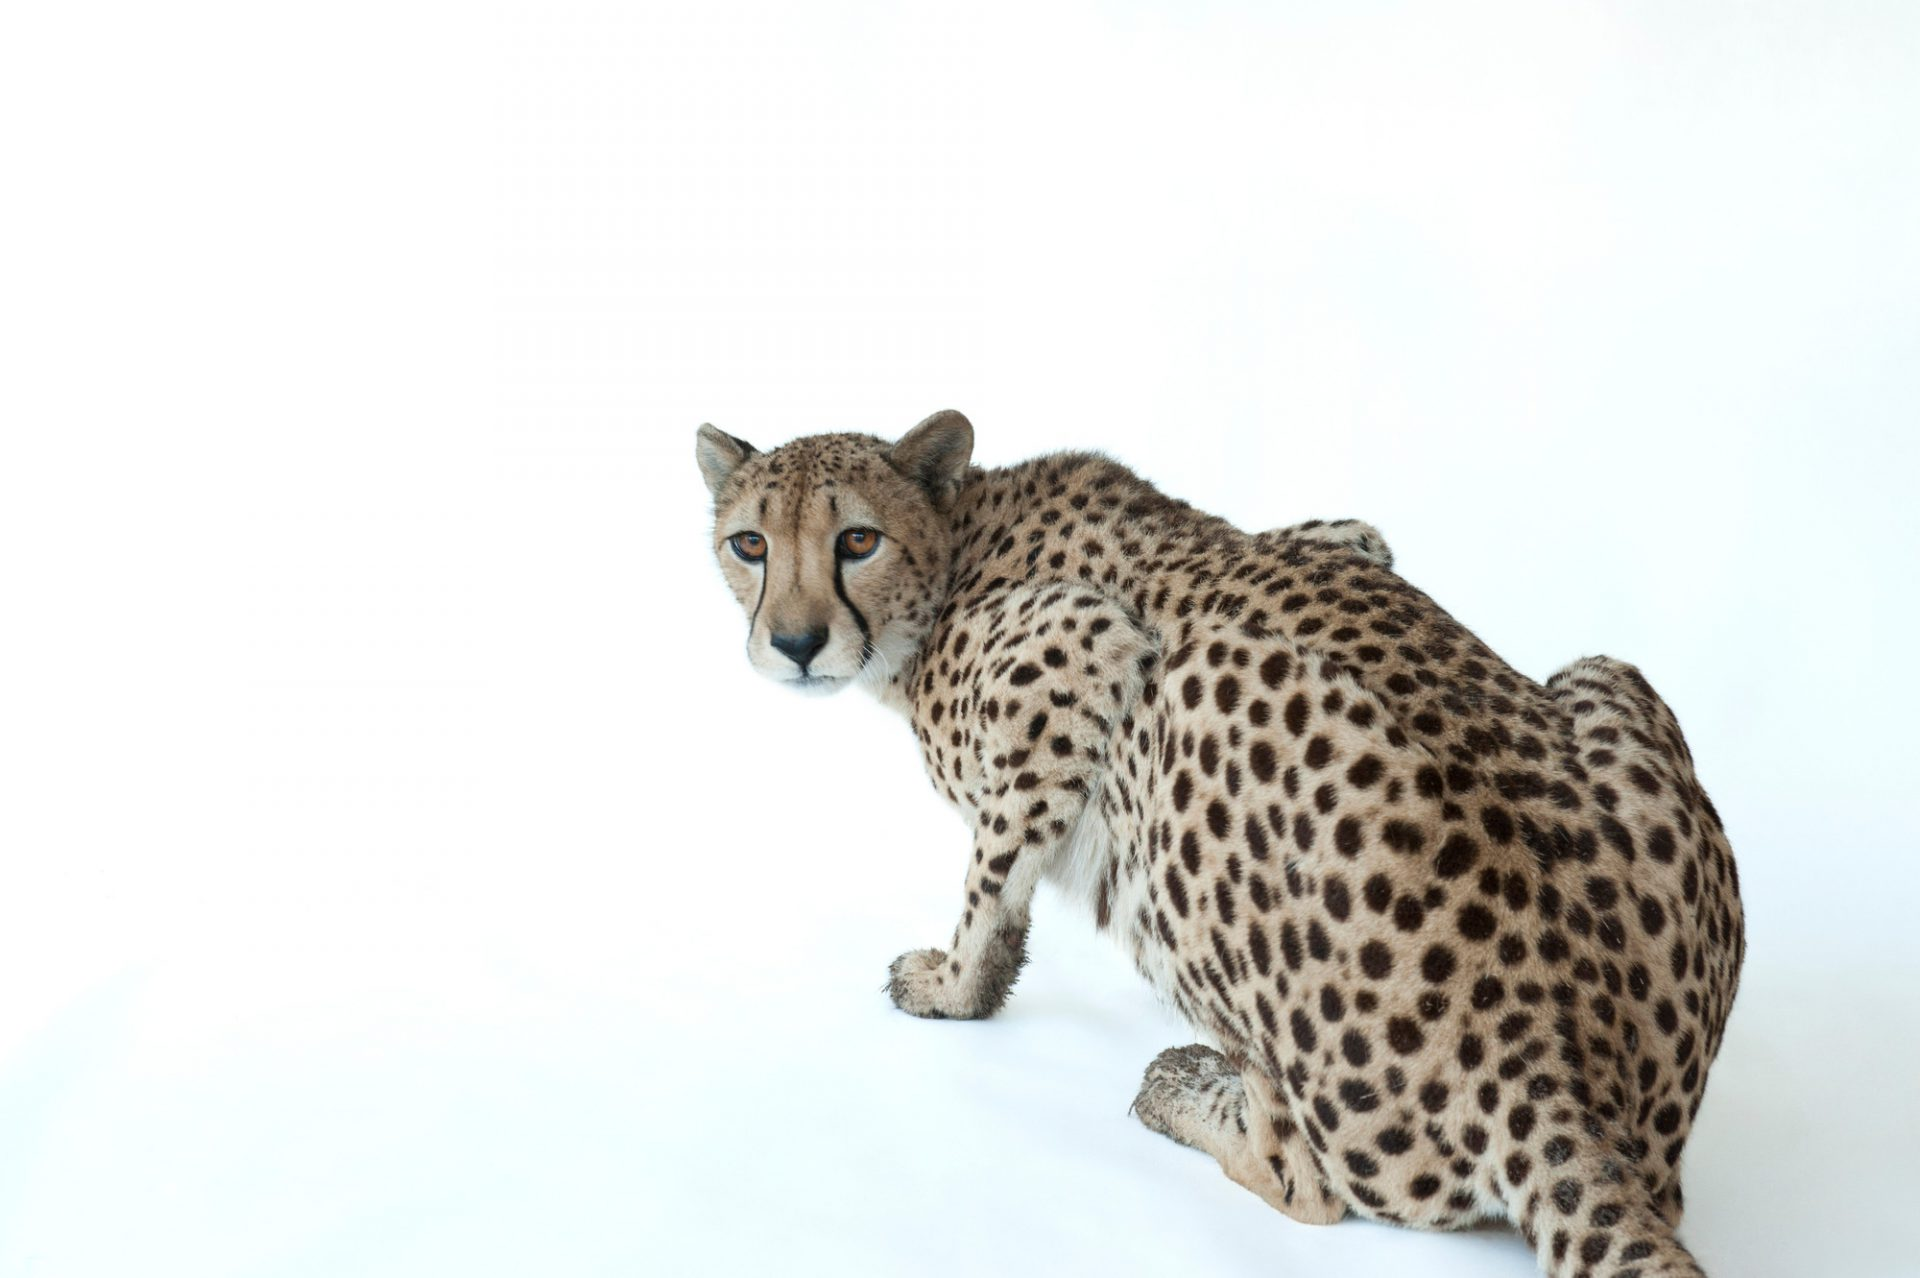 Photo: Hasari, a federally endangered three-year-old cheetah (Acinonyx jubatus) at White Oak Conservation Center.